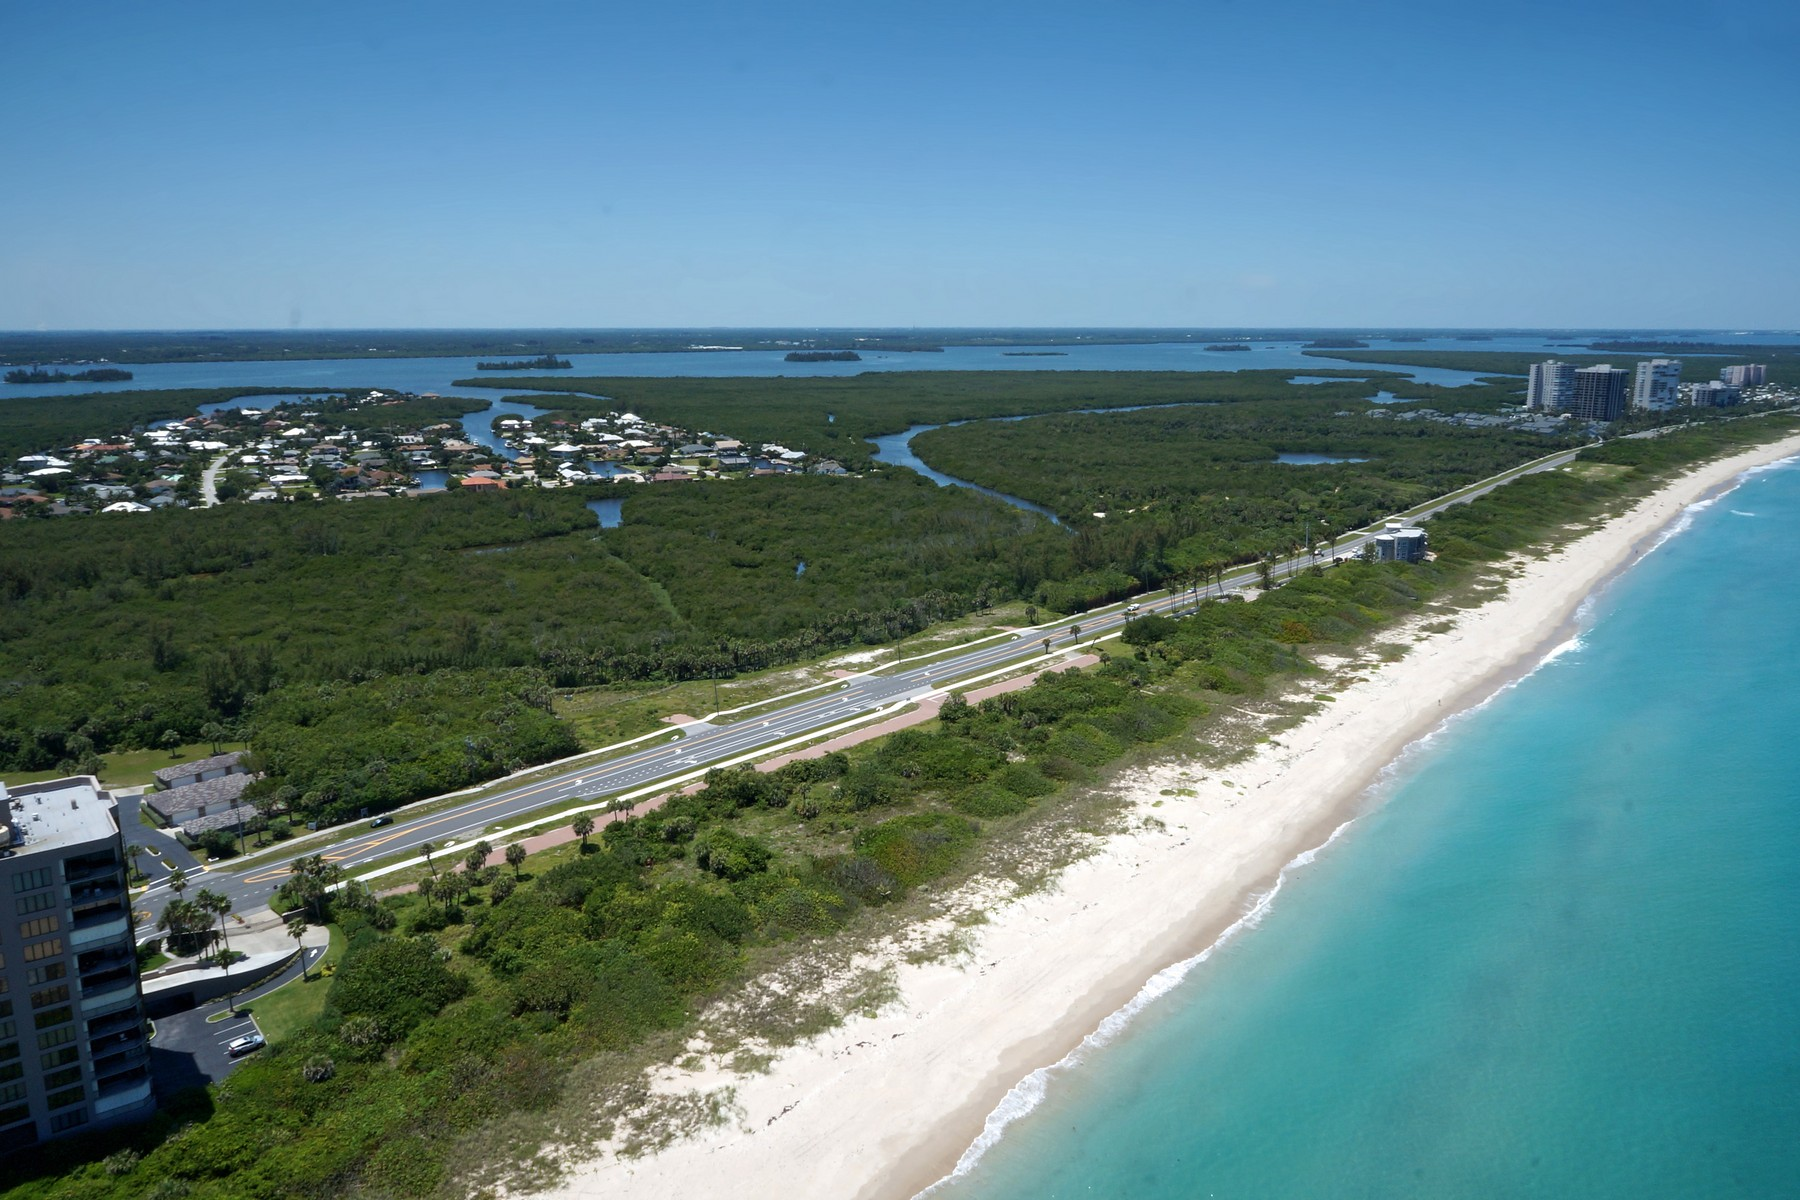 Land for Sale at Beautiful Homesite on North Hutchinson Island 4501 N HIGHWAY A1A Hutchinson Island, Florida 34949 United States